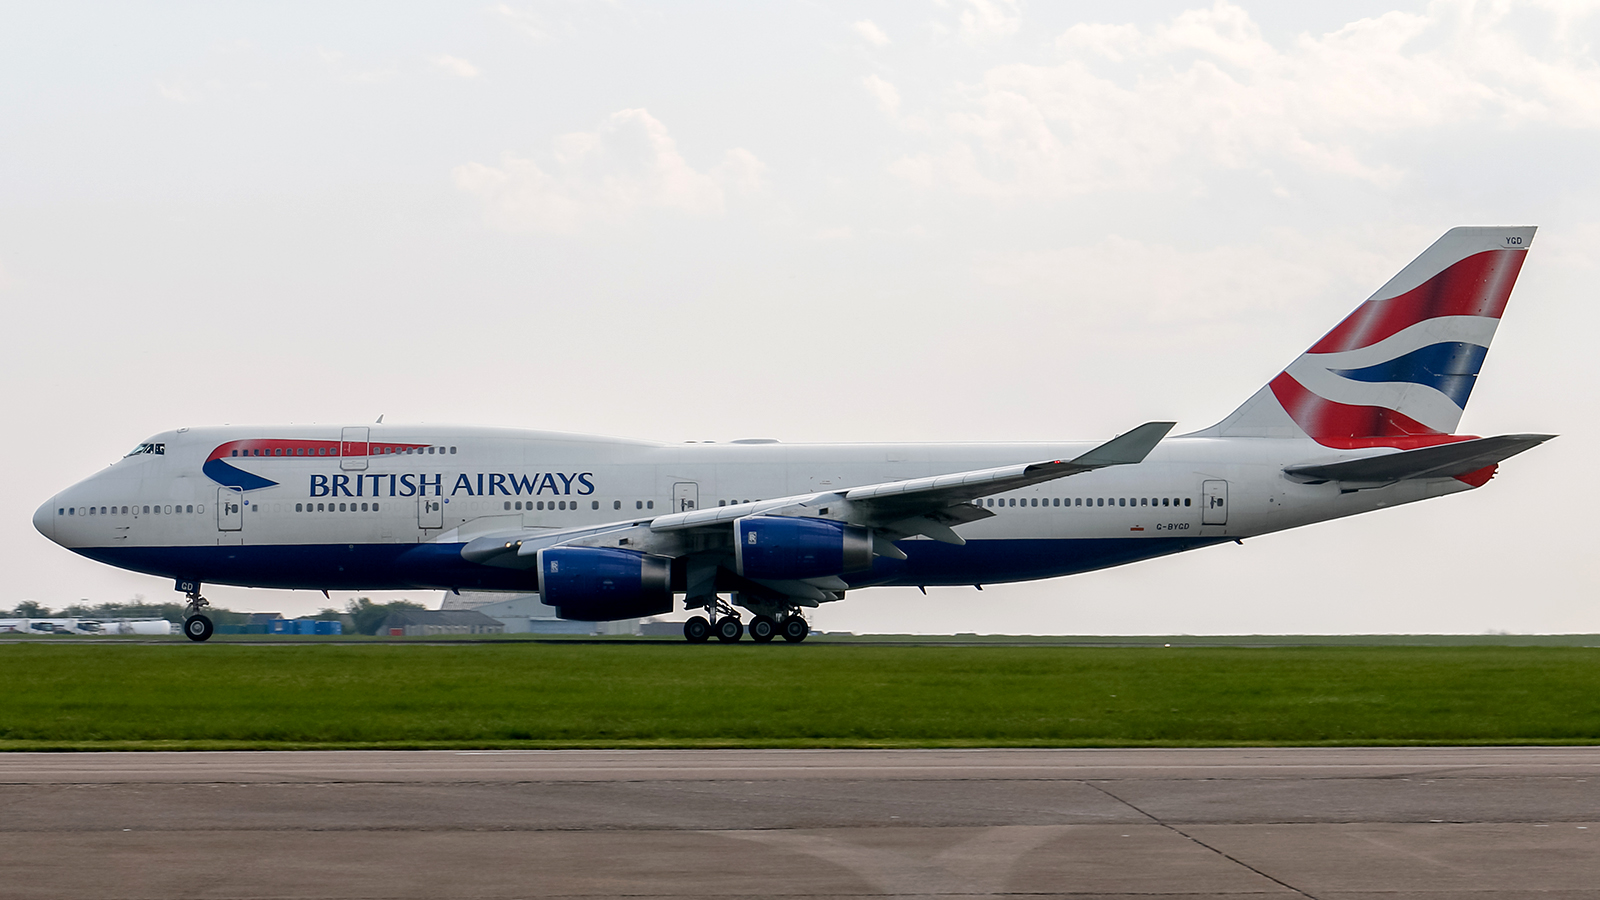 British Airways Boeing 747-400 G-BYGD